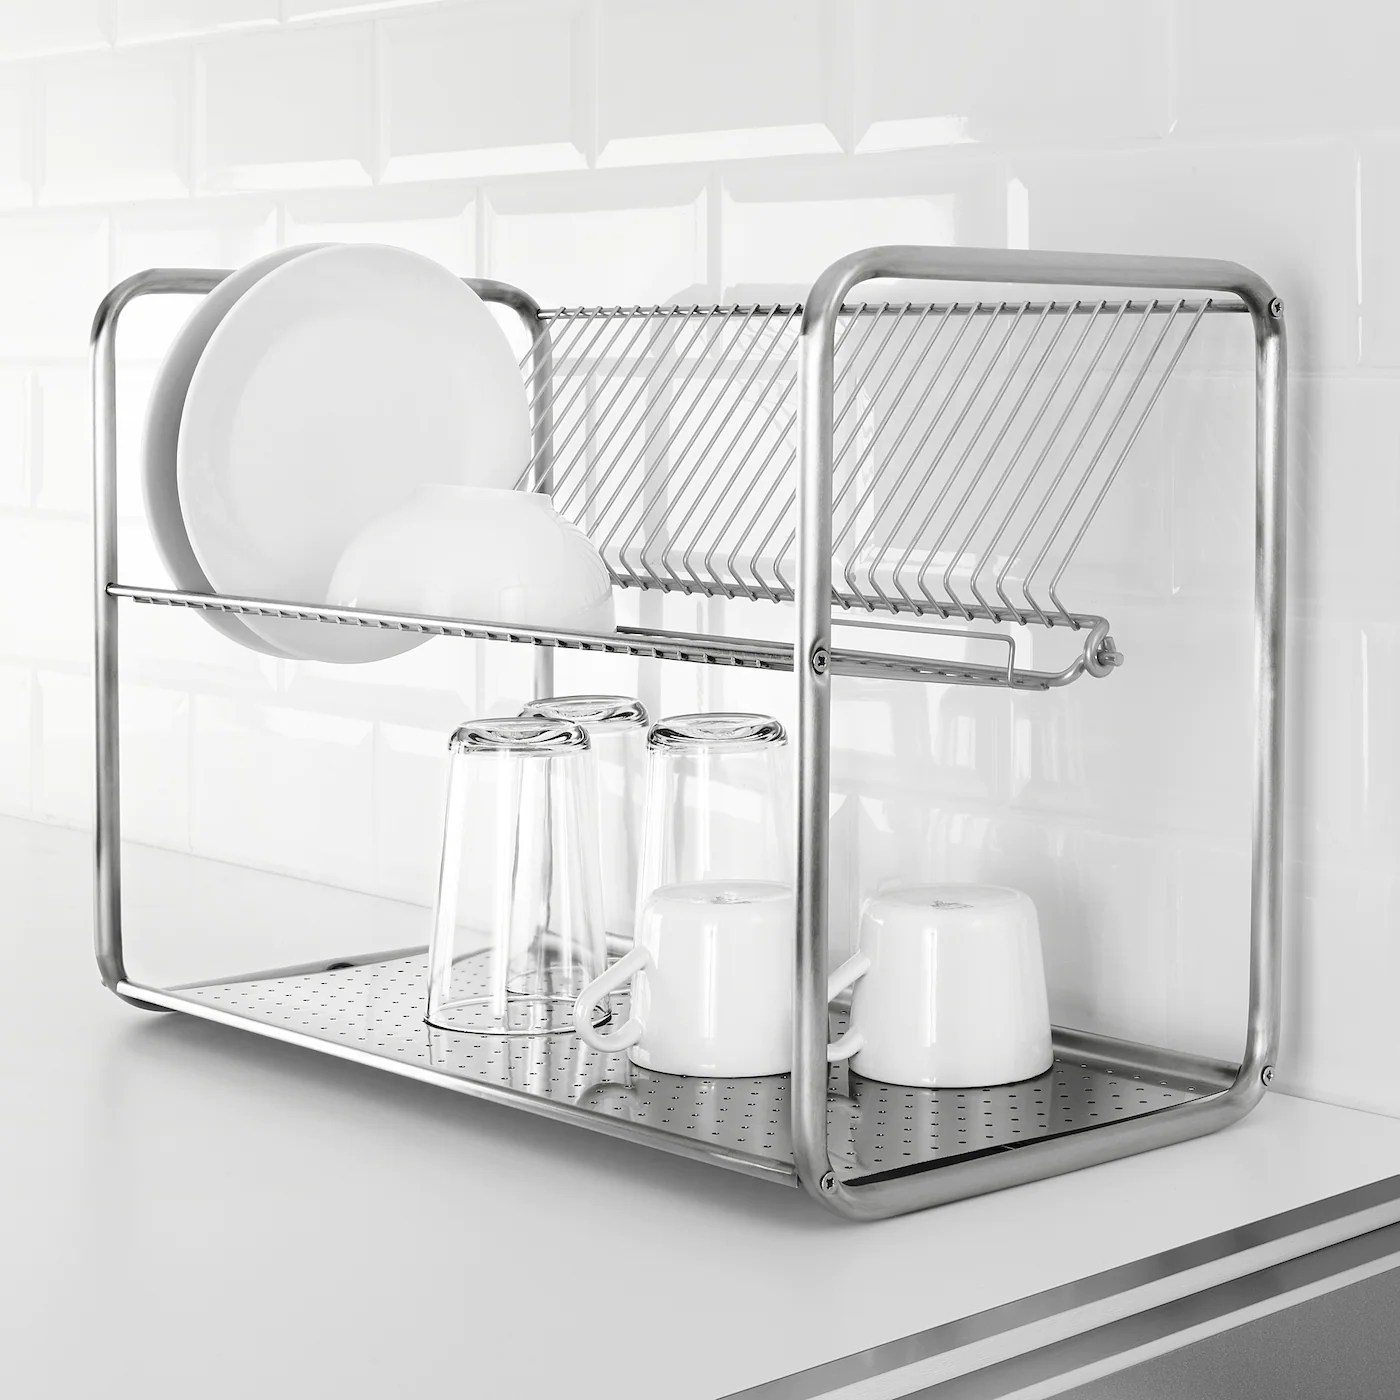 ordning dish drainer stainless steel 50x27x36 cm